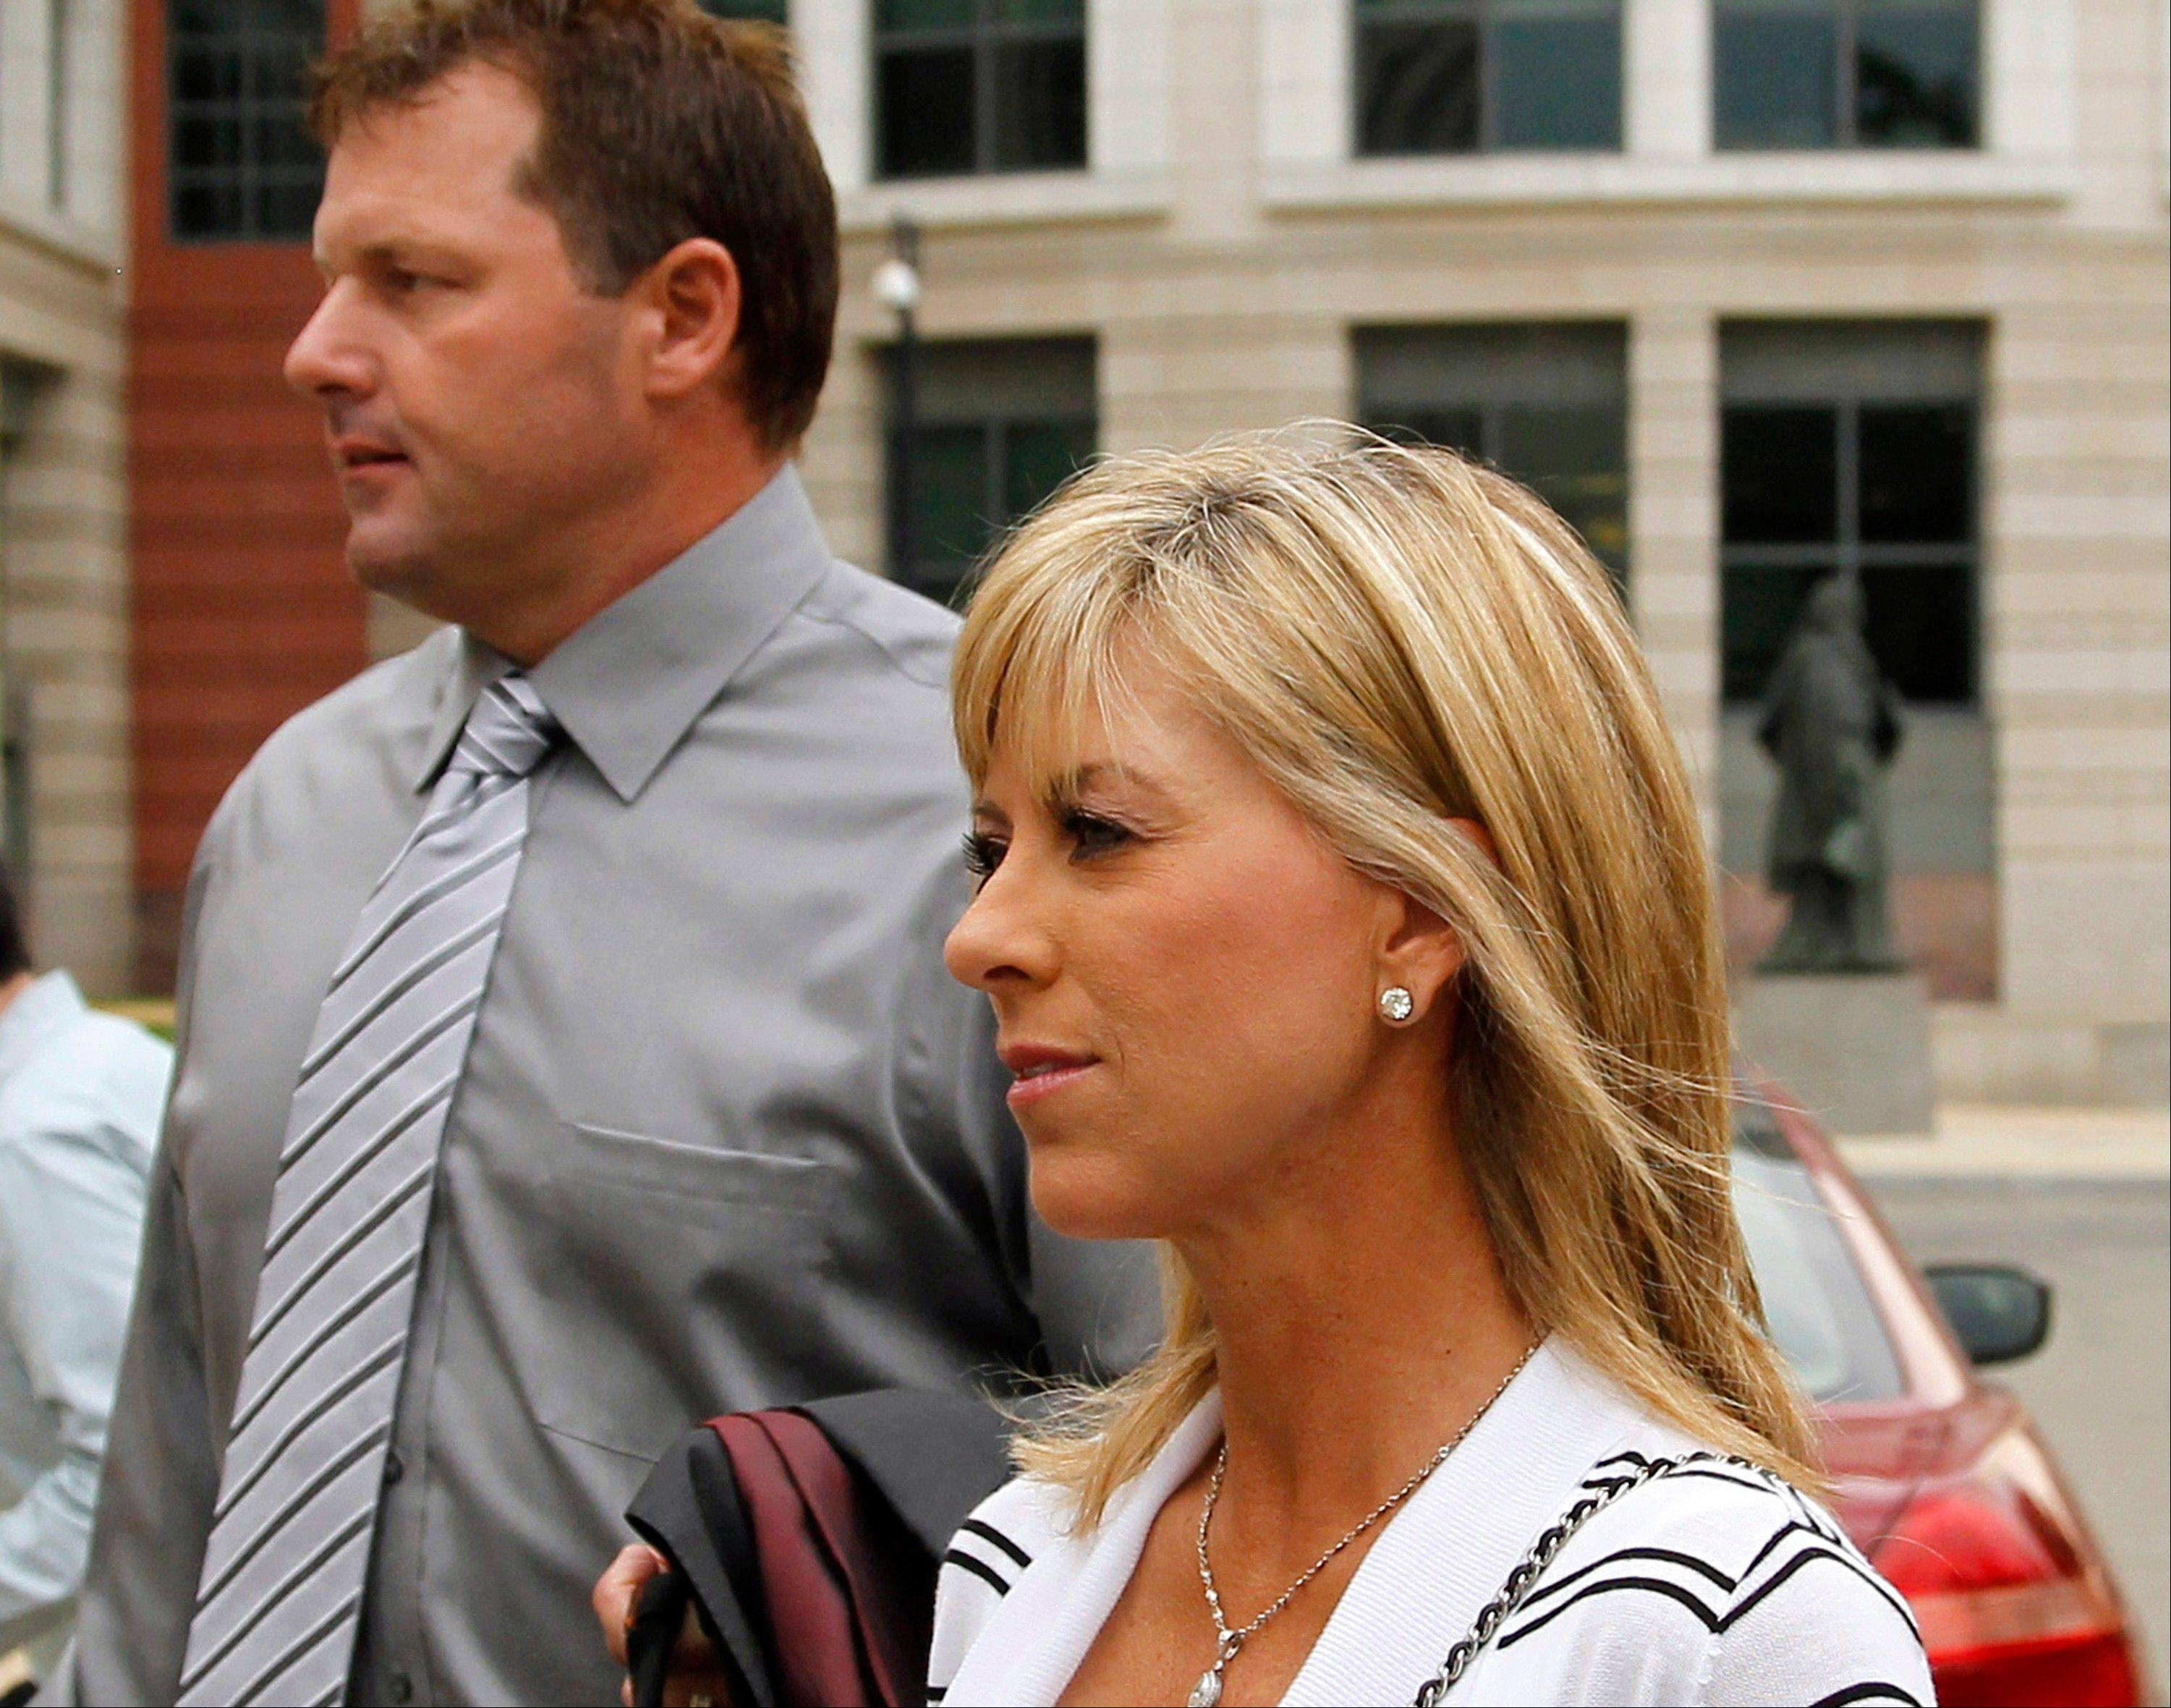 Clemens' wife says she took HGH -- and pitcher wasn't there